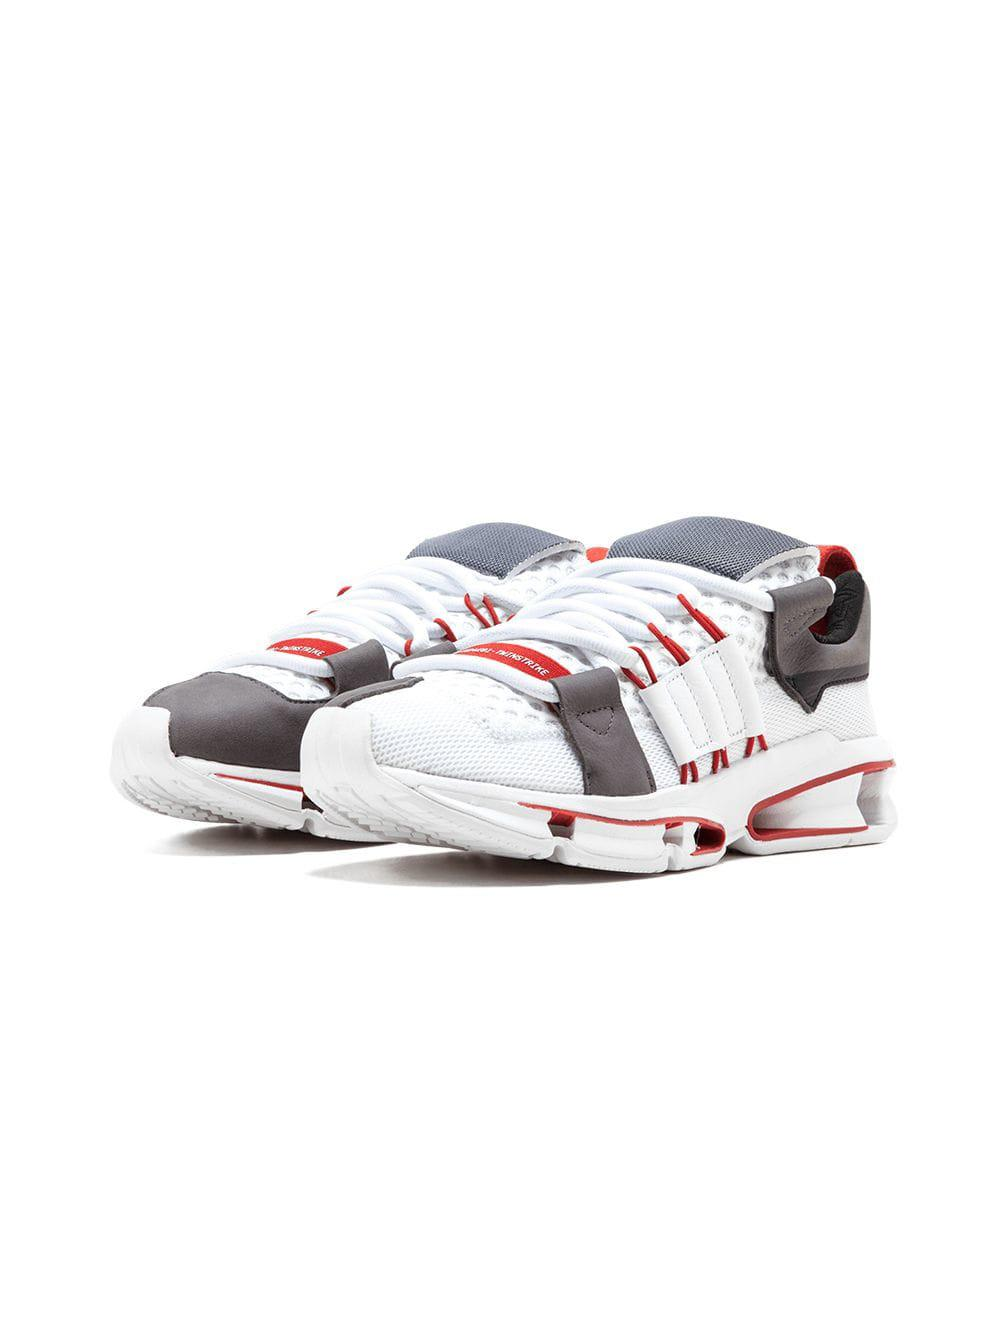 bb866235c3bfe adidas Twinstrike A   d Sneakers in White for Men - Lyst